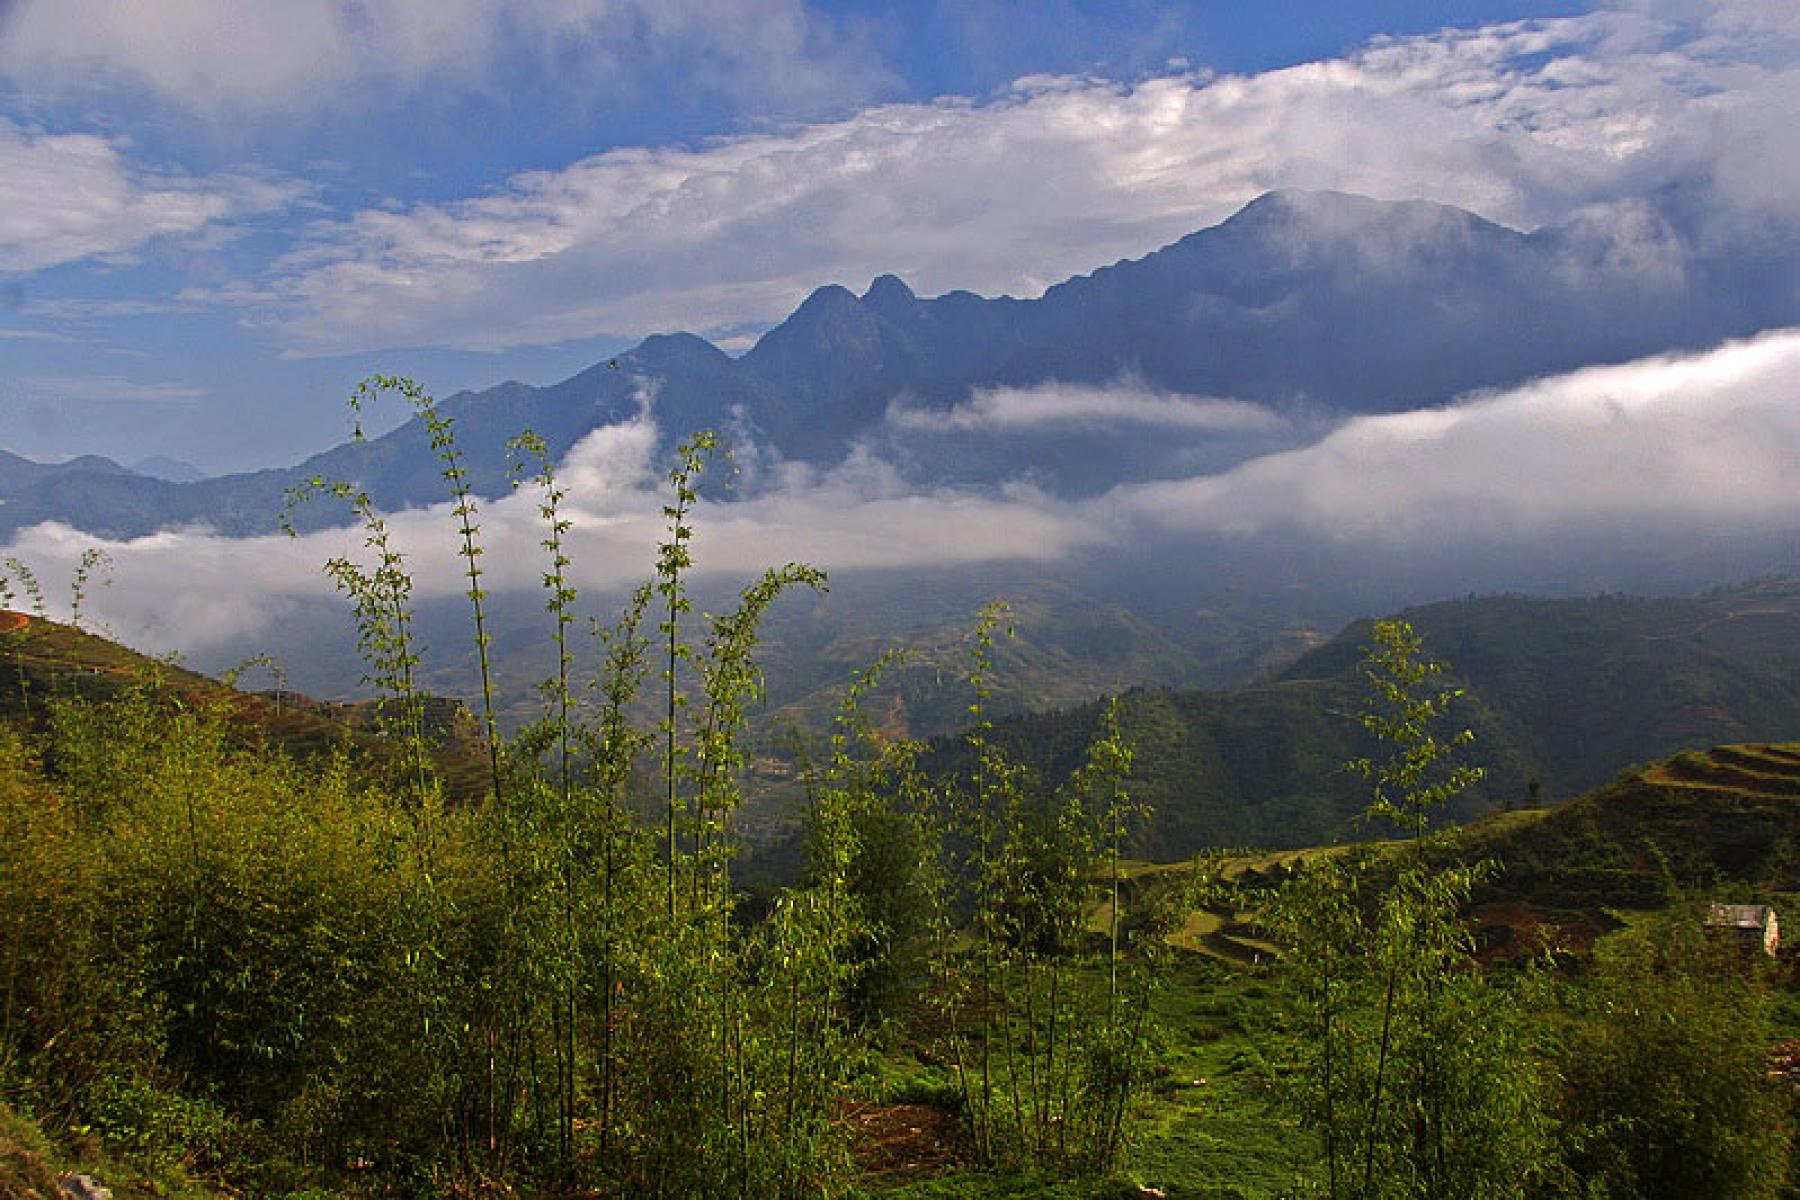 Sapa's mountains in Vietnam with the local Hmong tribe starting at Sa Pa, Lao Cai, Vietnam